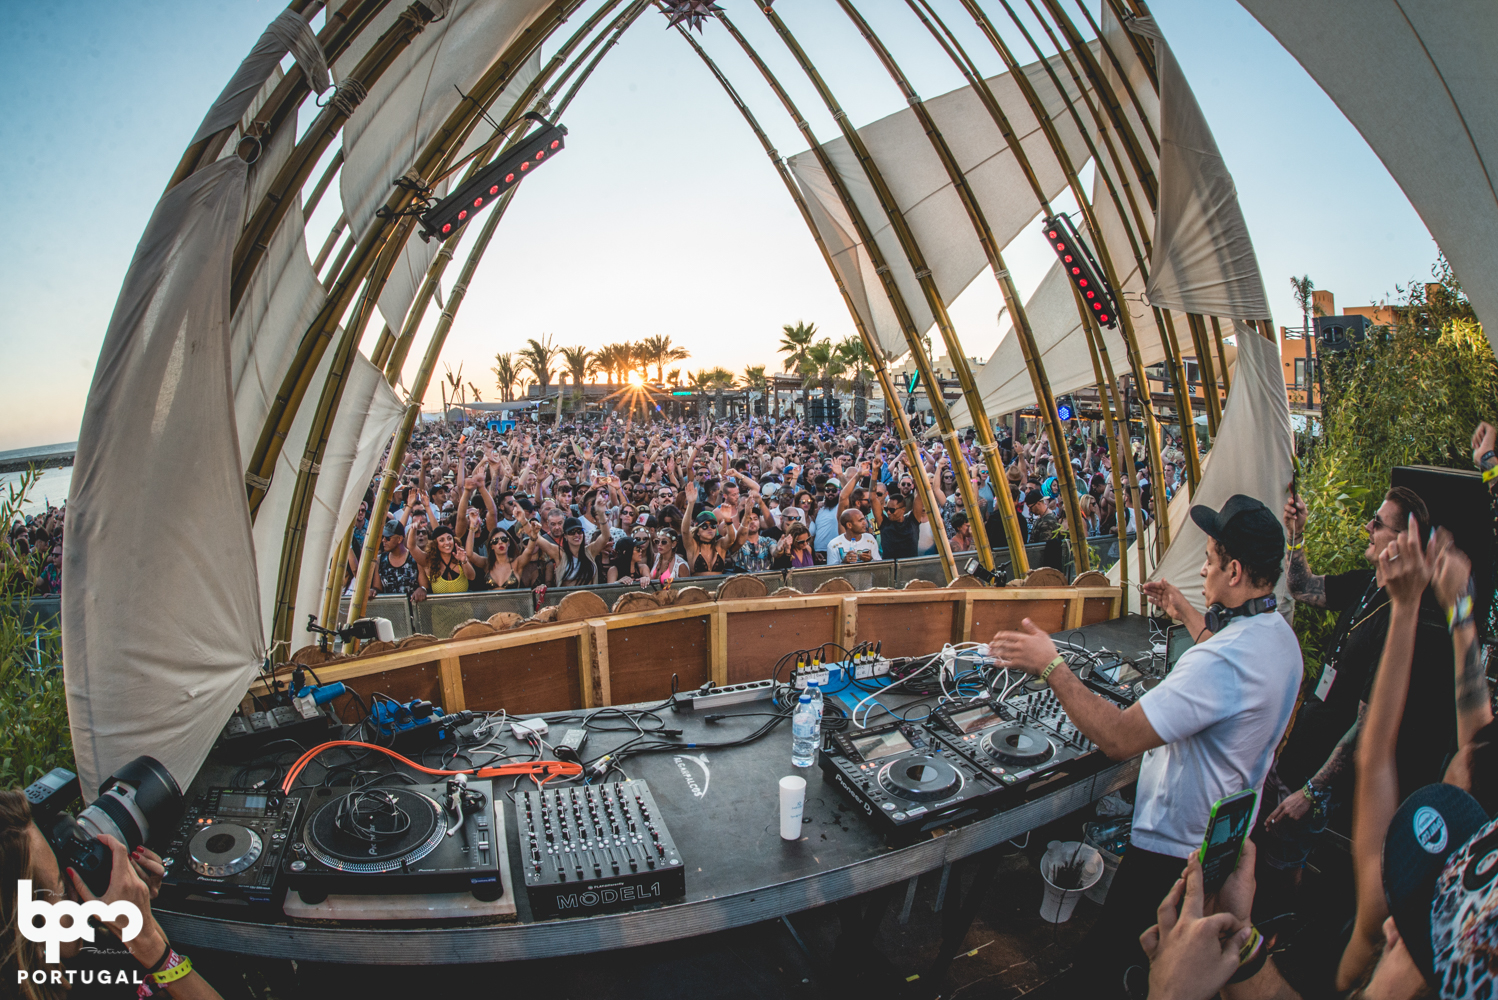 BPM Festival in Portugal Releases Second Round of Artists